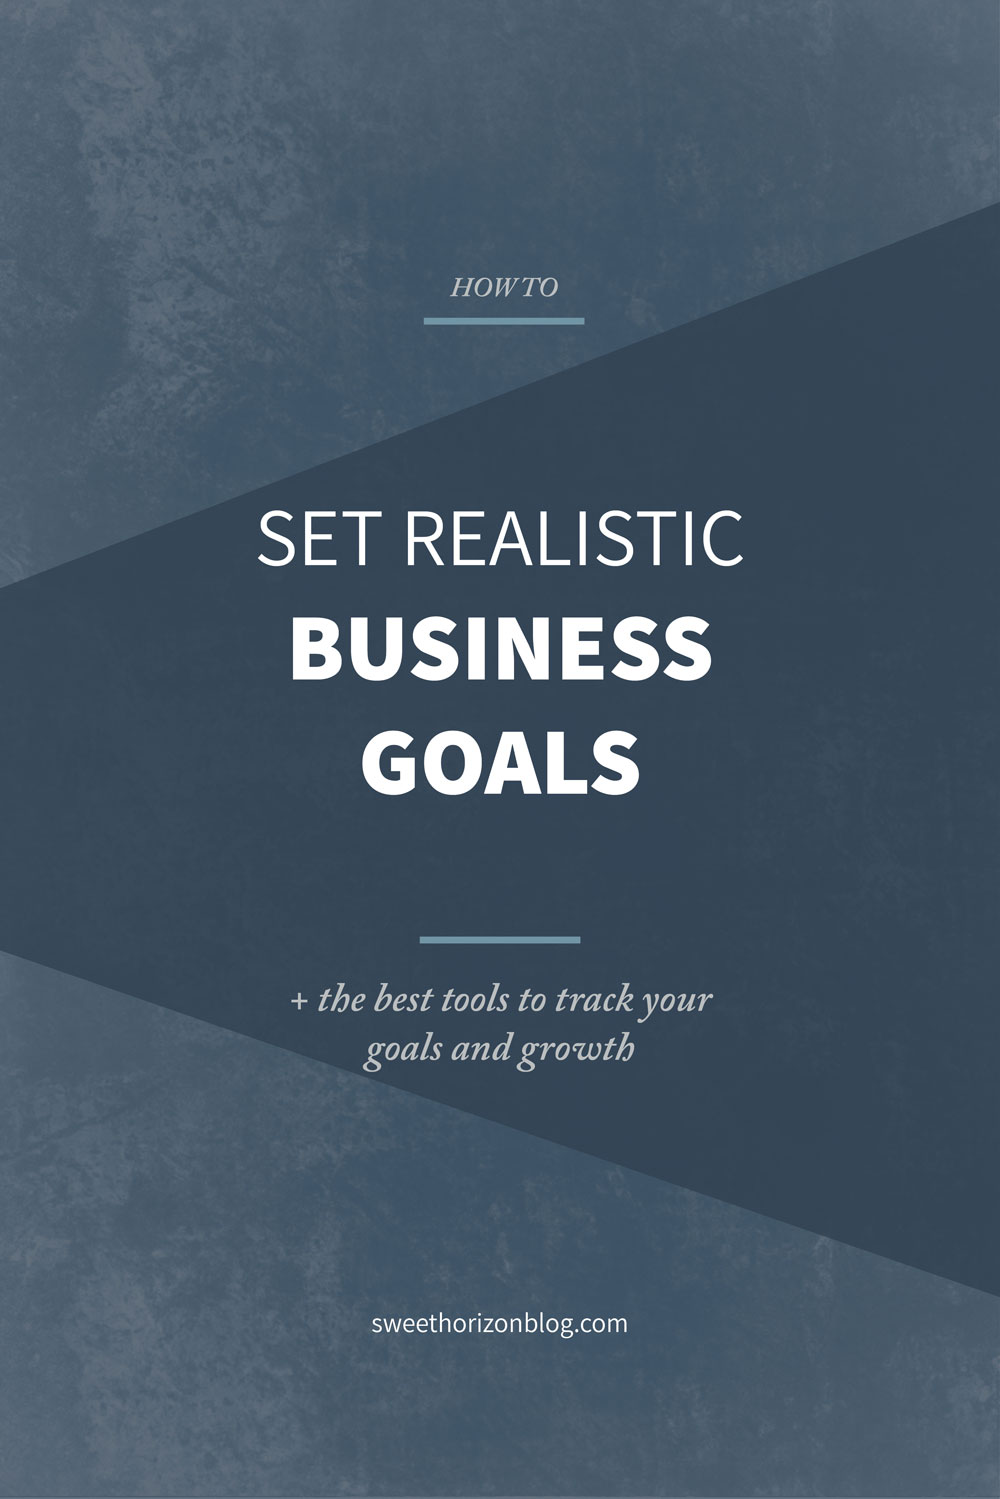 How to Set Realistic Business Goals from www.sweethorizonblog.com